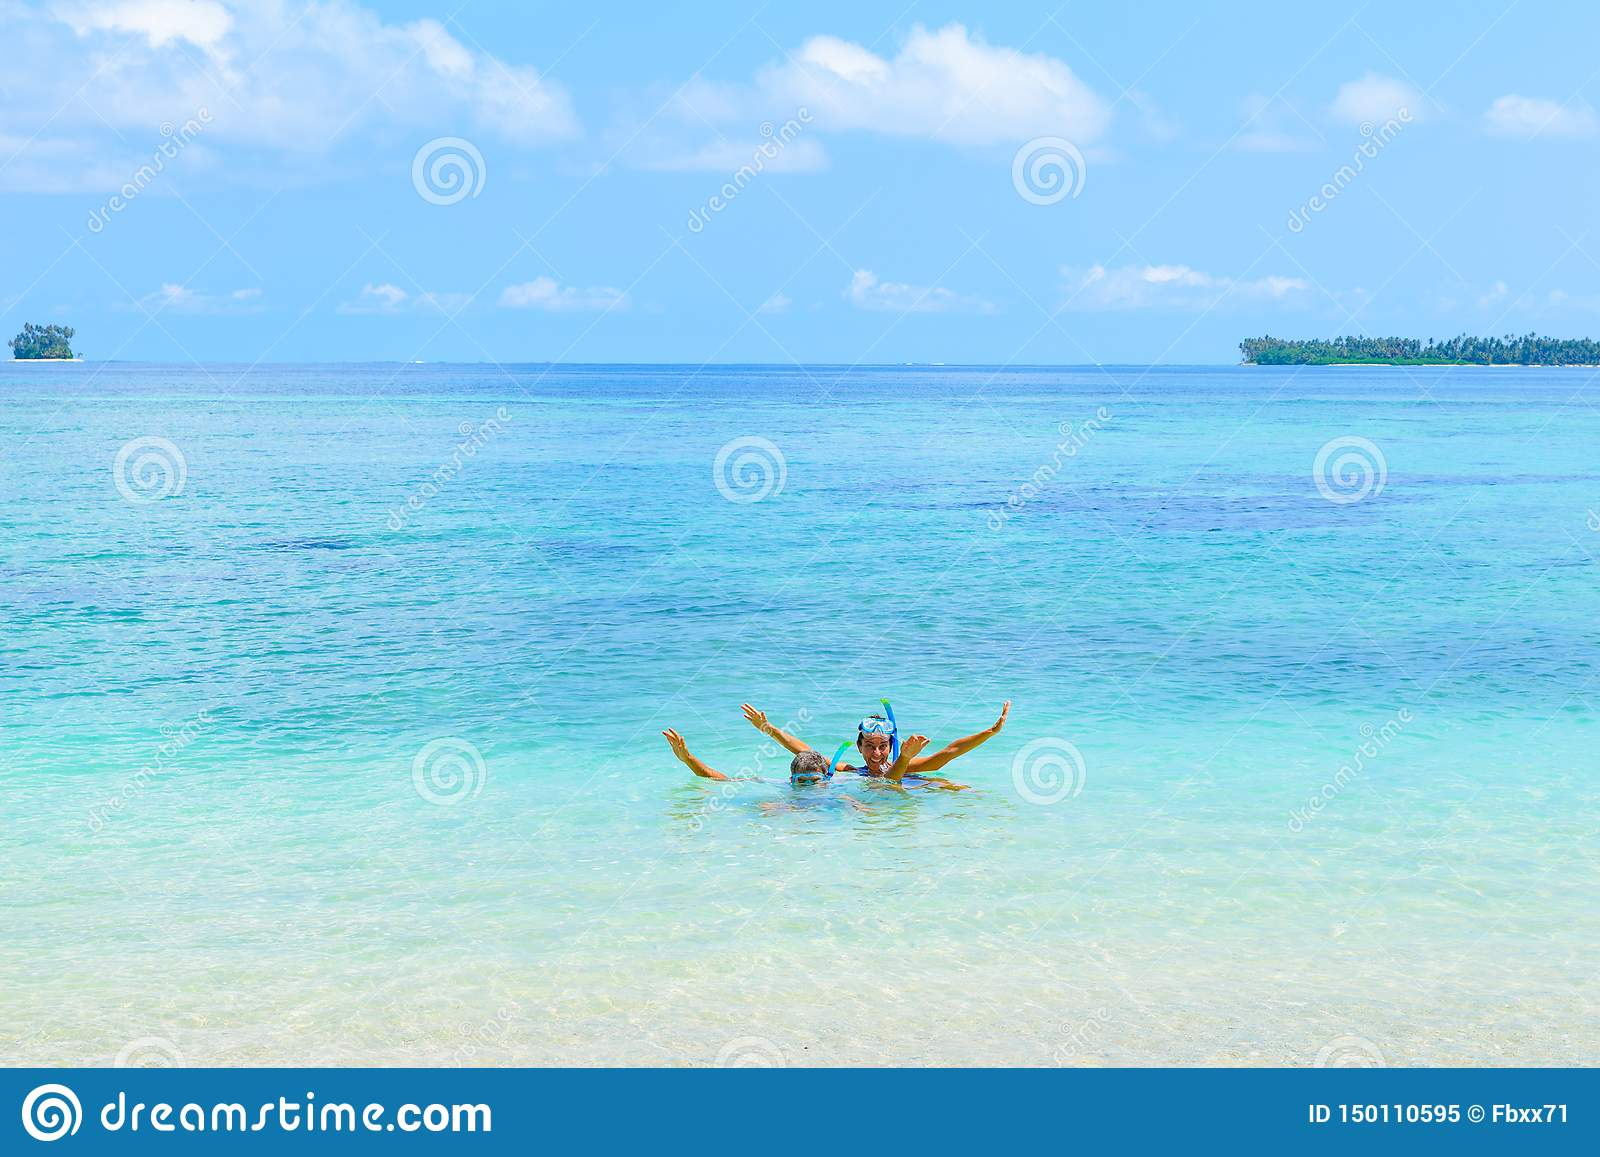 Happy adult couple having fun in turquoise water wearing snorkeling mask. Real people bathing in caribbean sea on tropical beach,